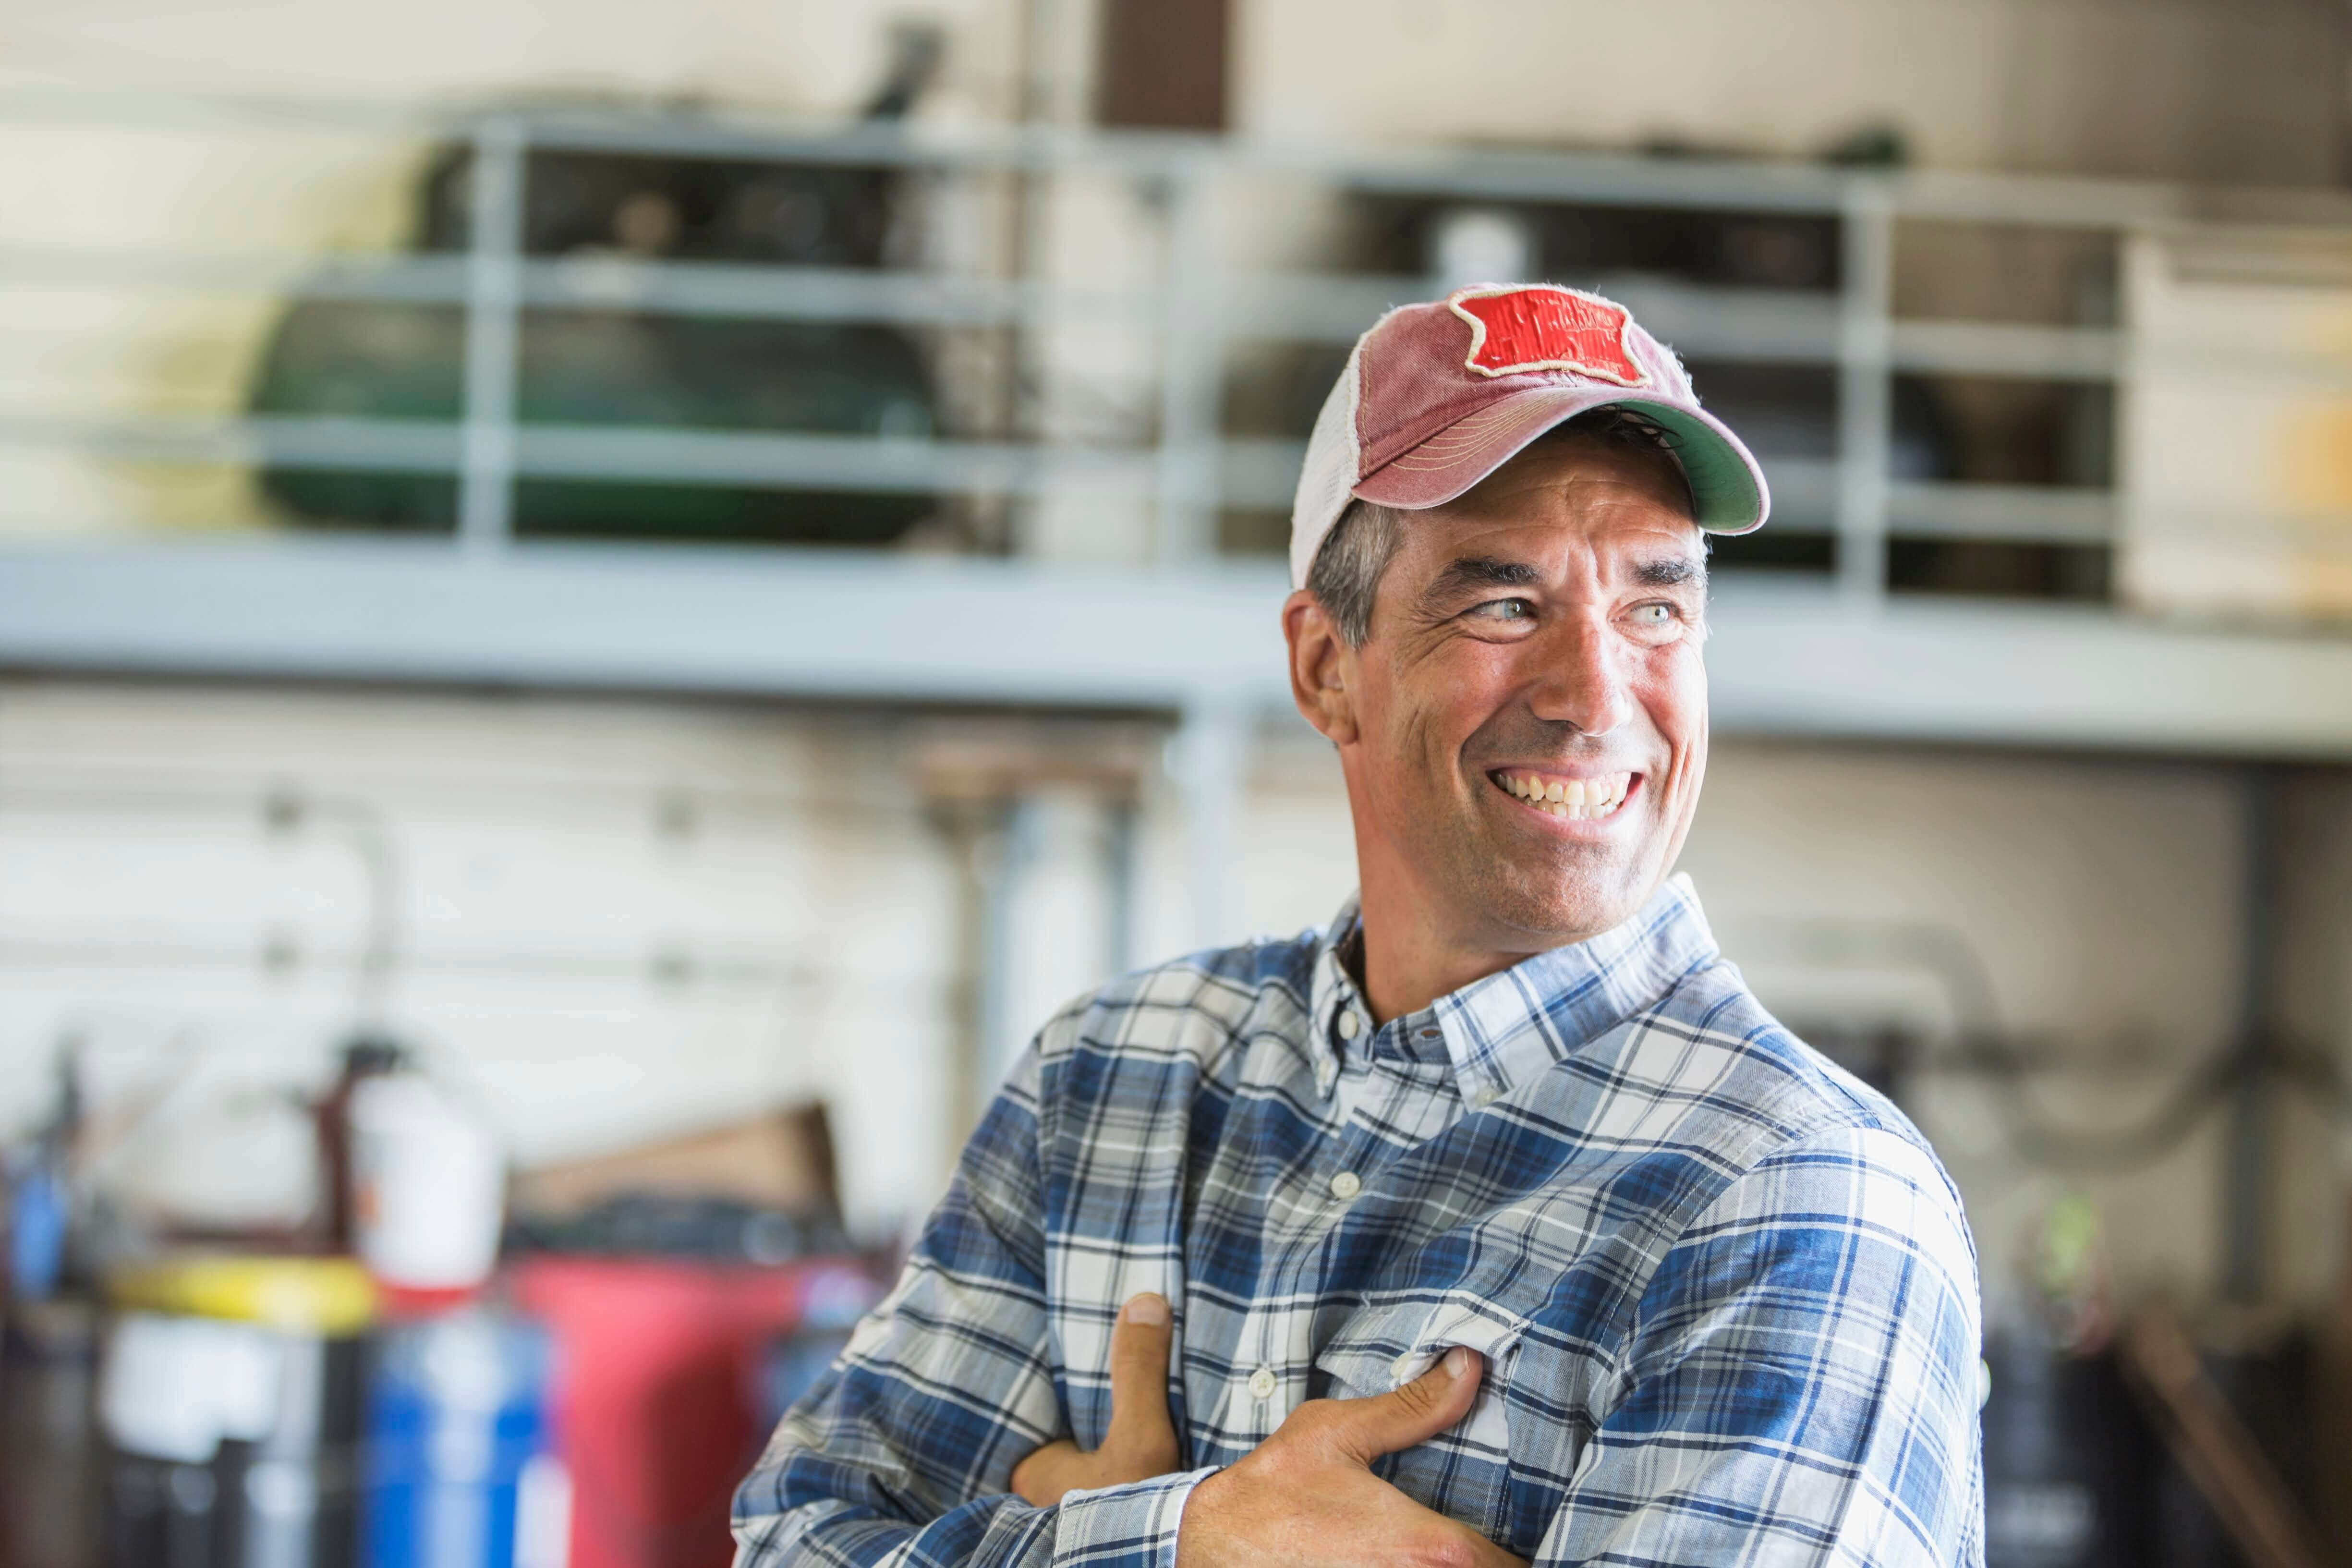 Smiling farmer in a ball cap and flannel